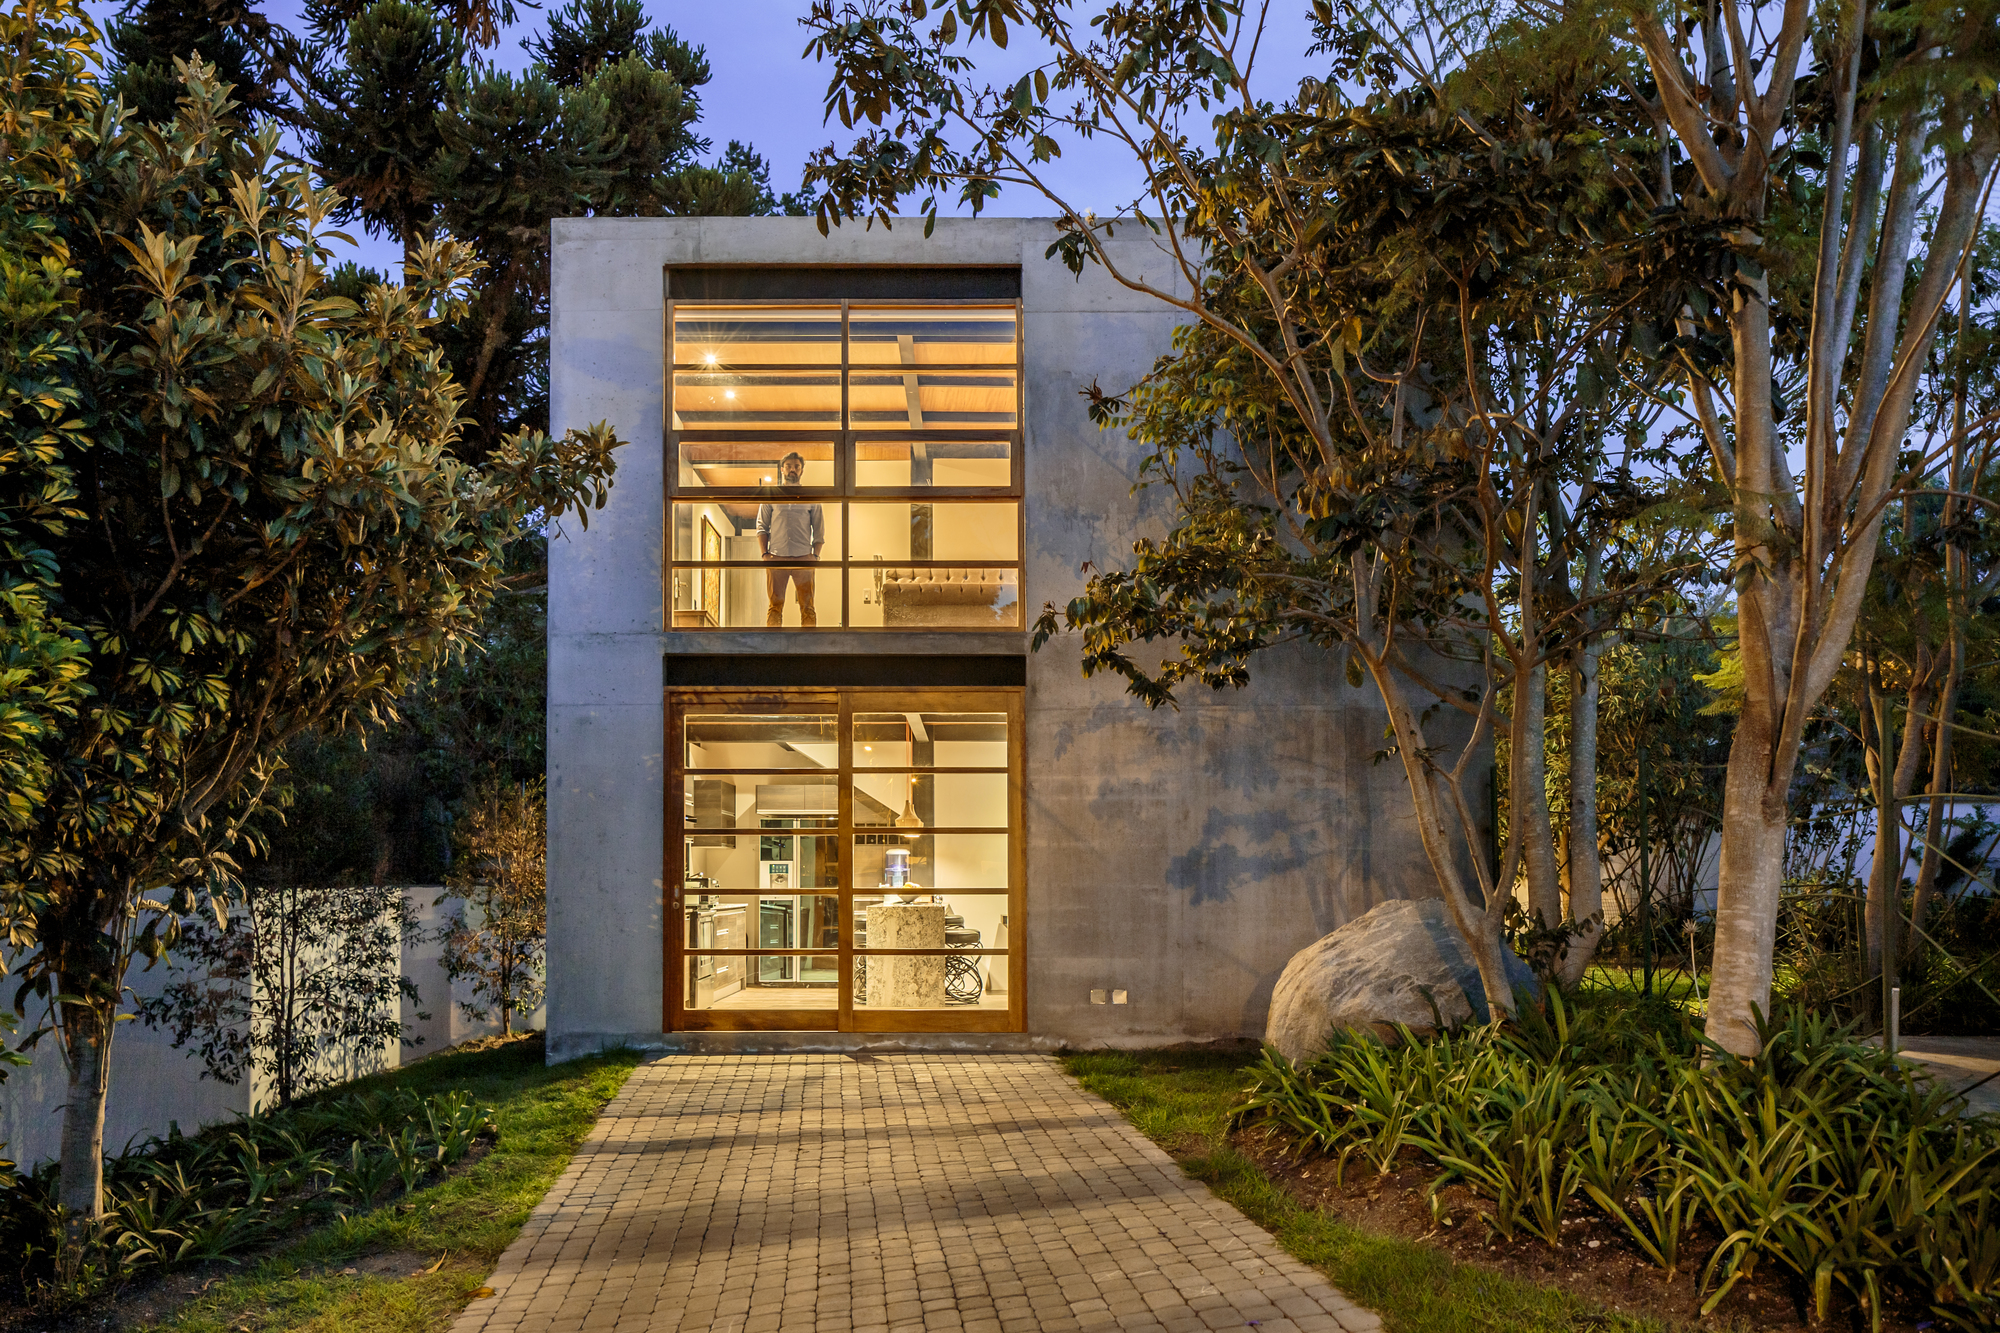 Cubo house diez muller arquitectos archdaily - The cubic home ...